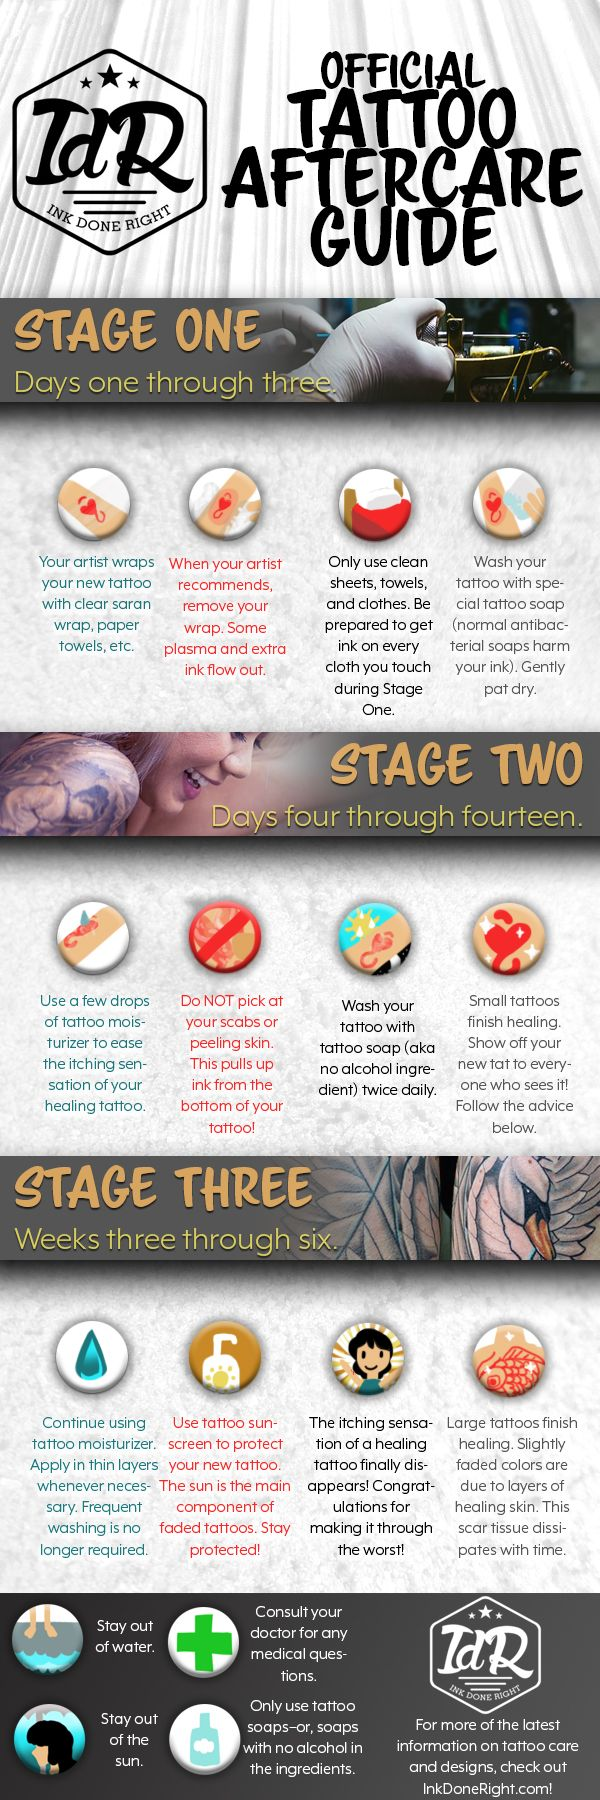 It's very important to know How to Care for a Tattoo, since your tattoo aftercare will affect how your tattoo ends up looking. Tattoos that are...